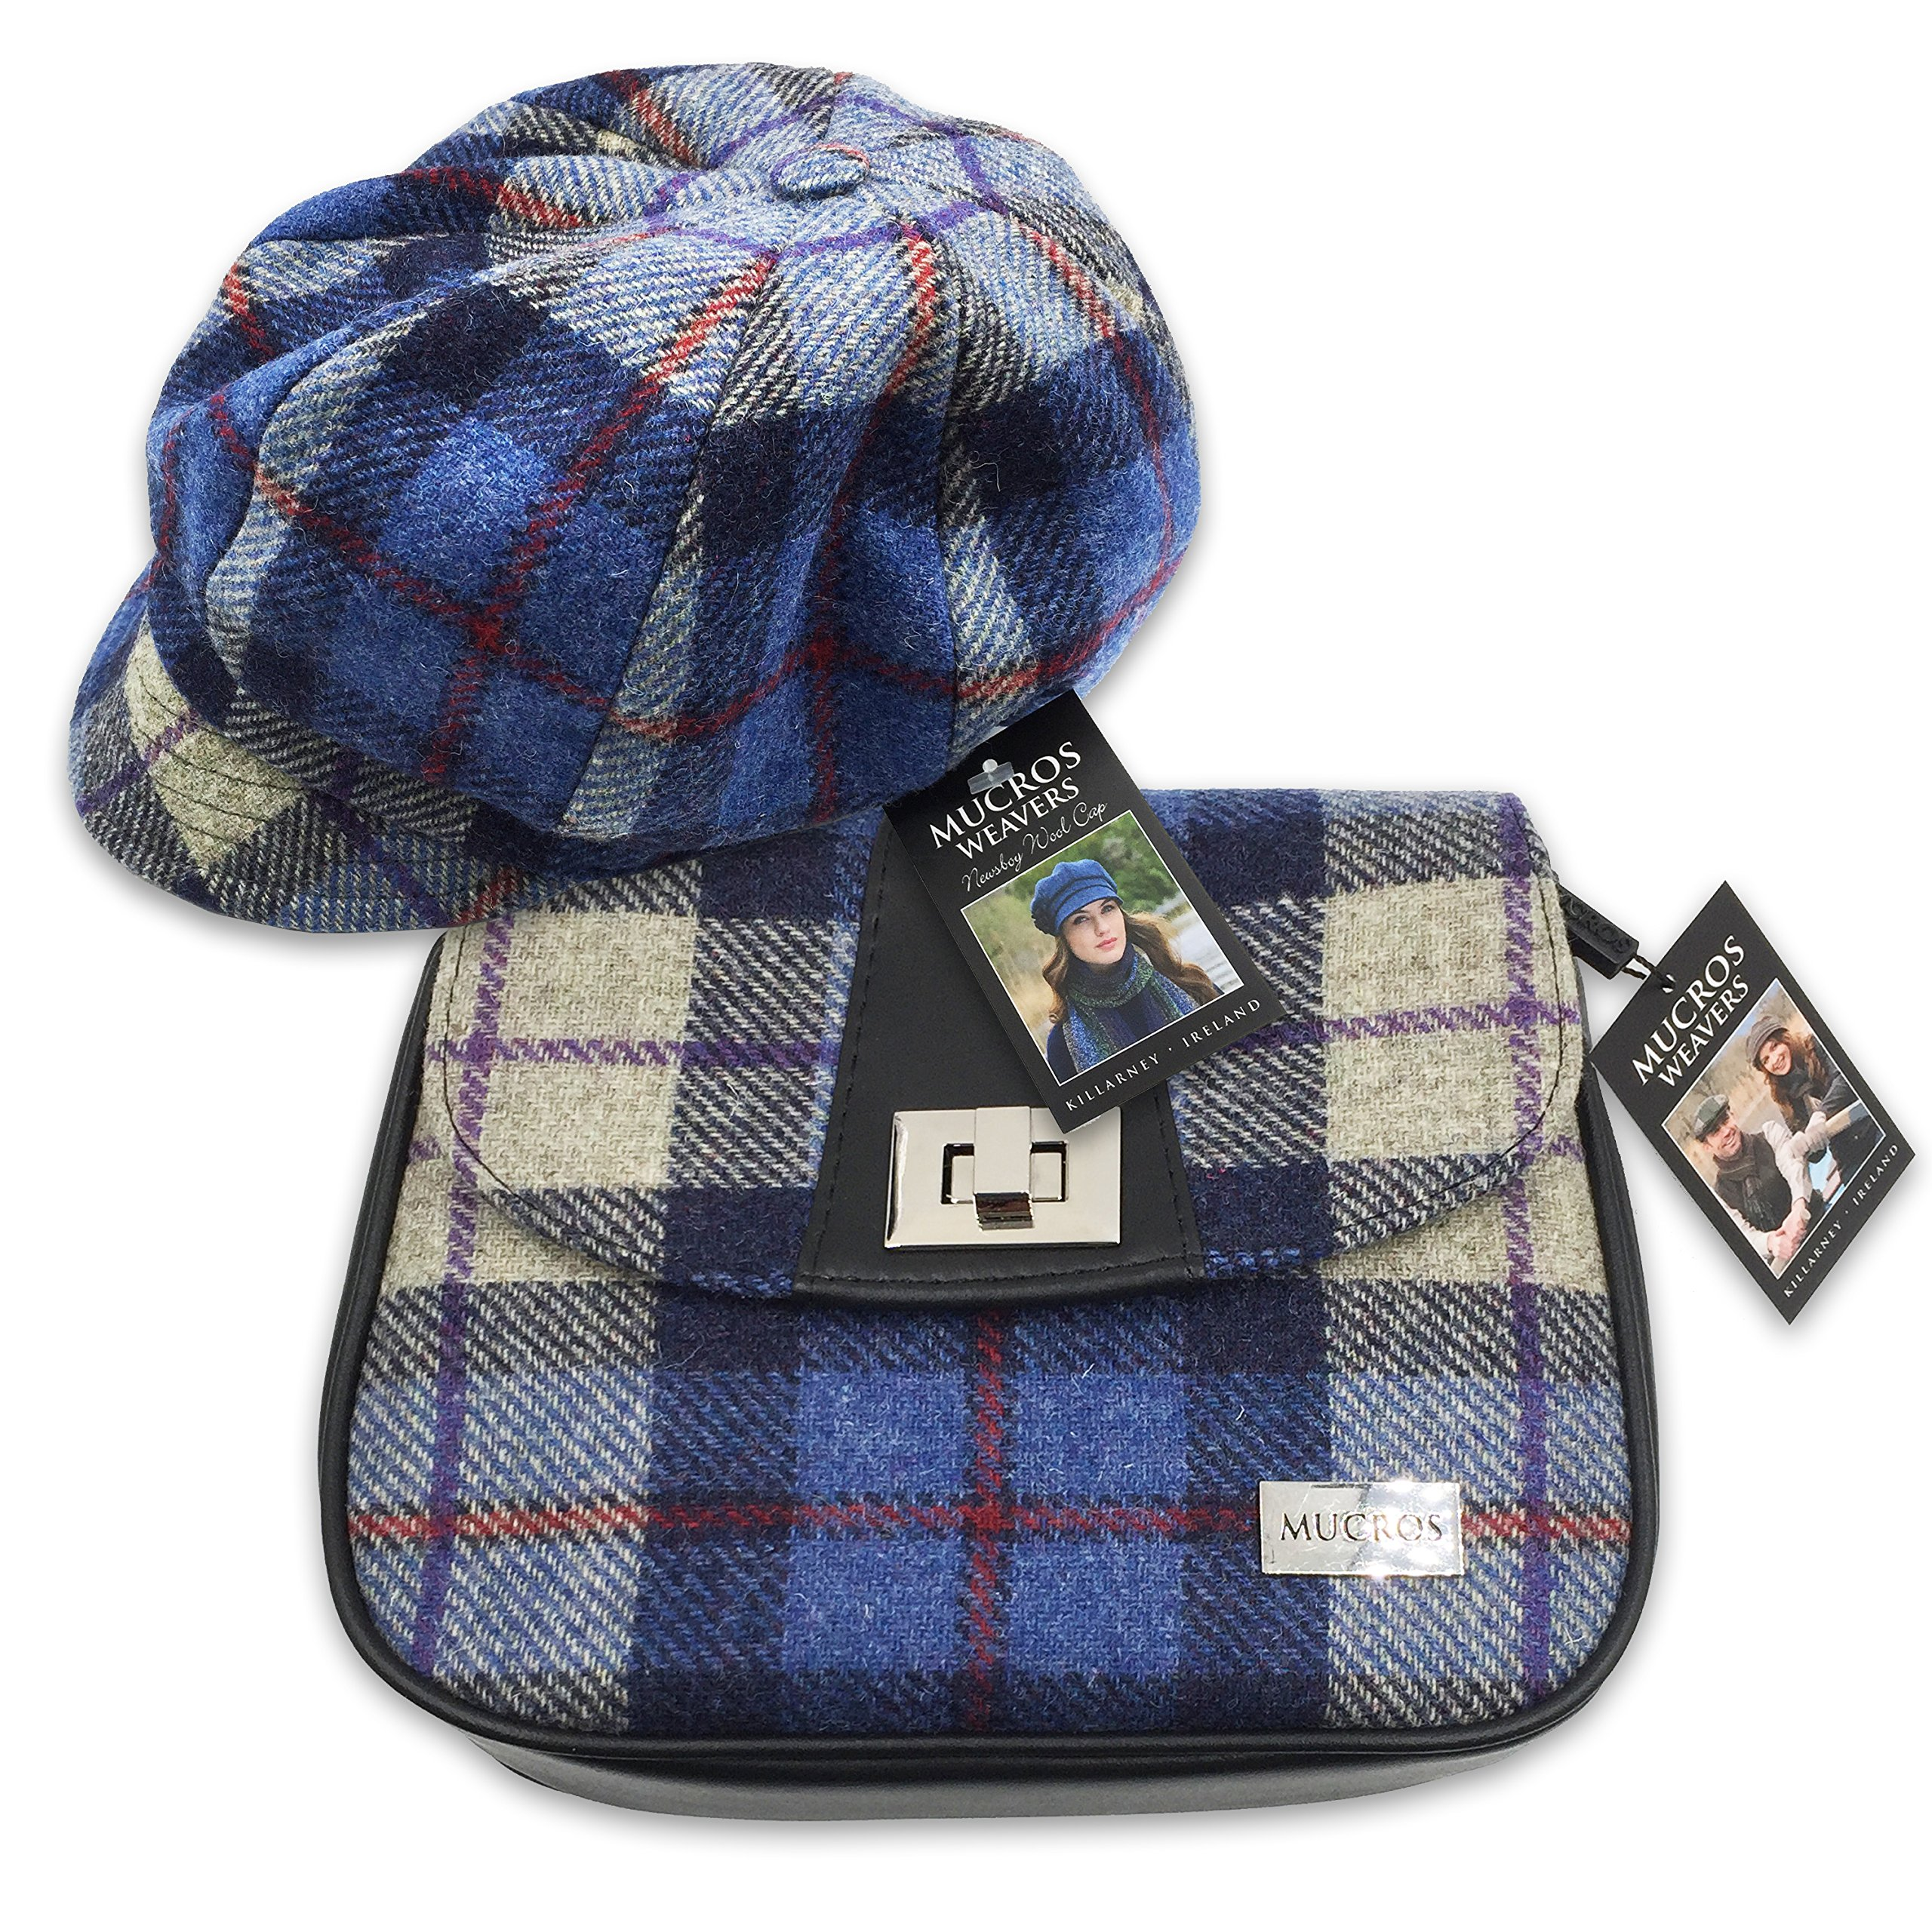 Mucros newsboy Cap and Sarah Bag Set (Blue Plaid) by Mucros Weavers